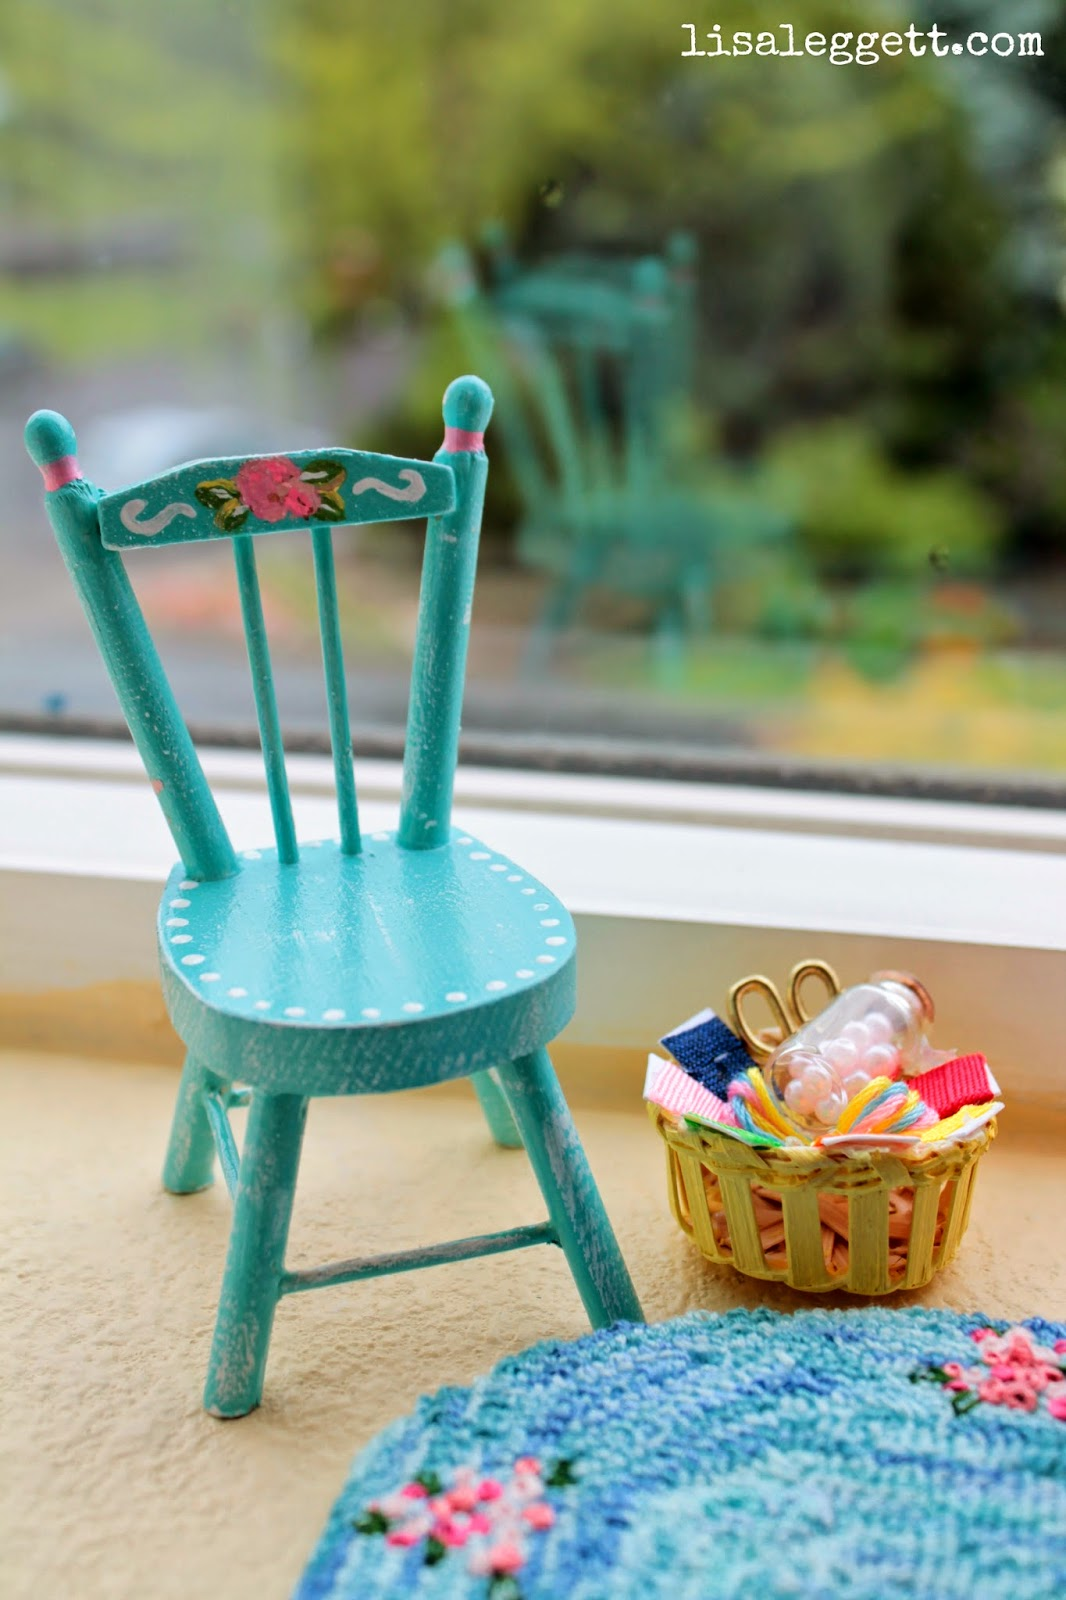 Mini painted chair & craft basket by Lisa Leggett